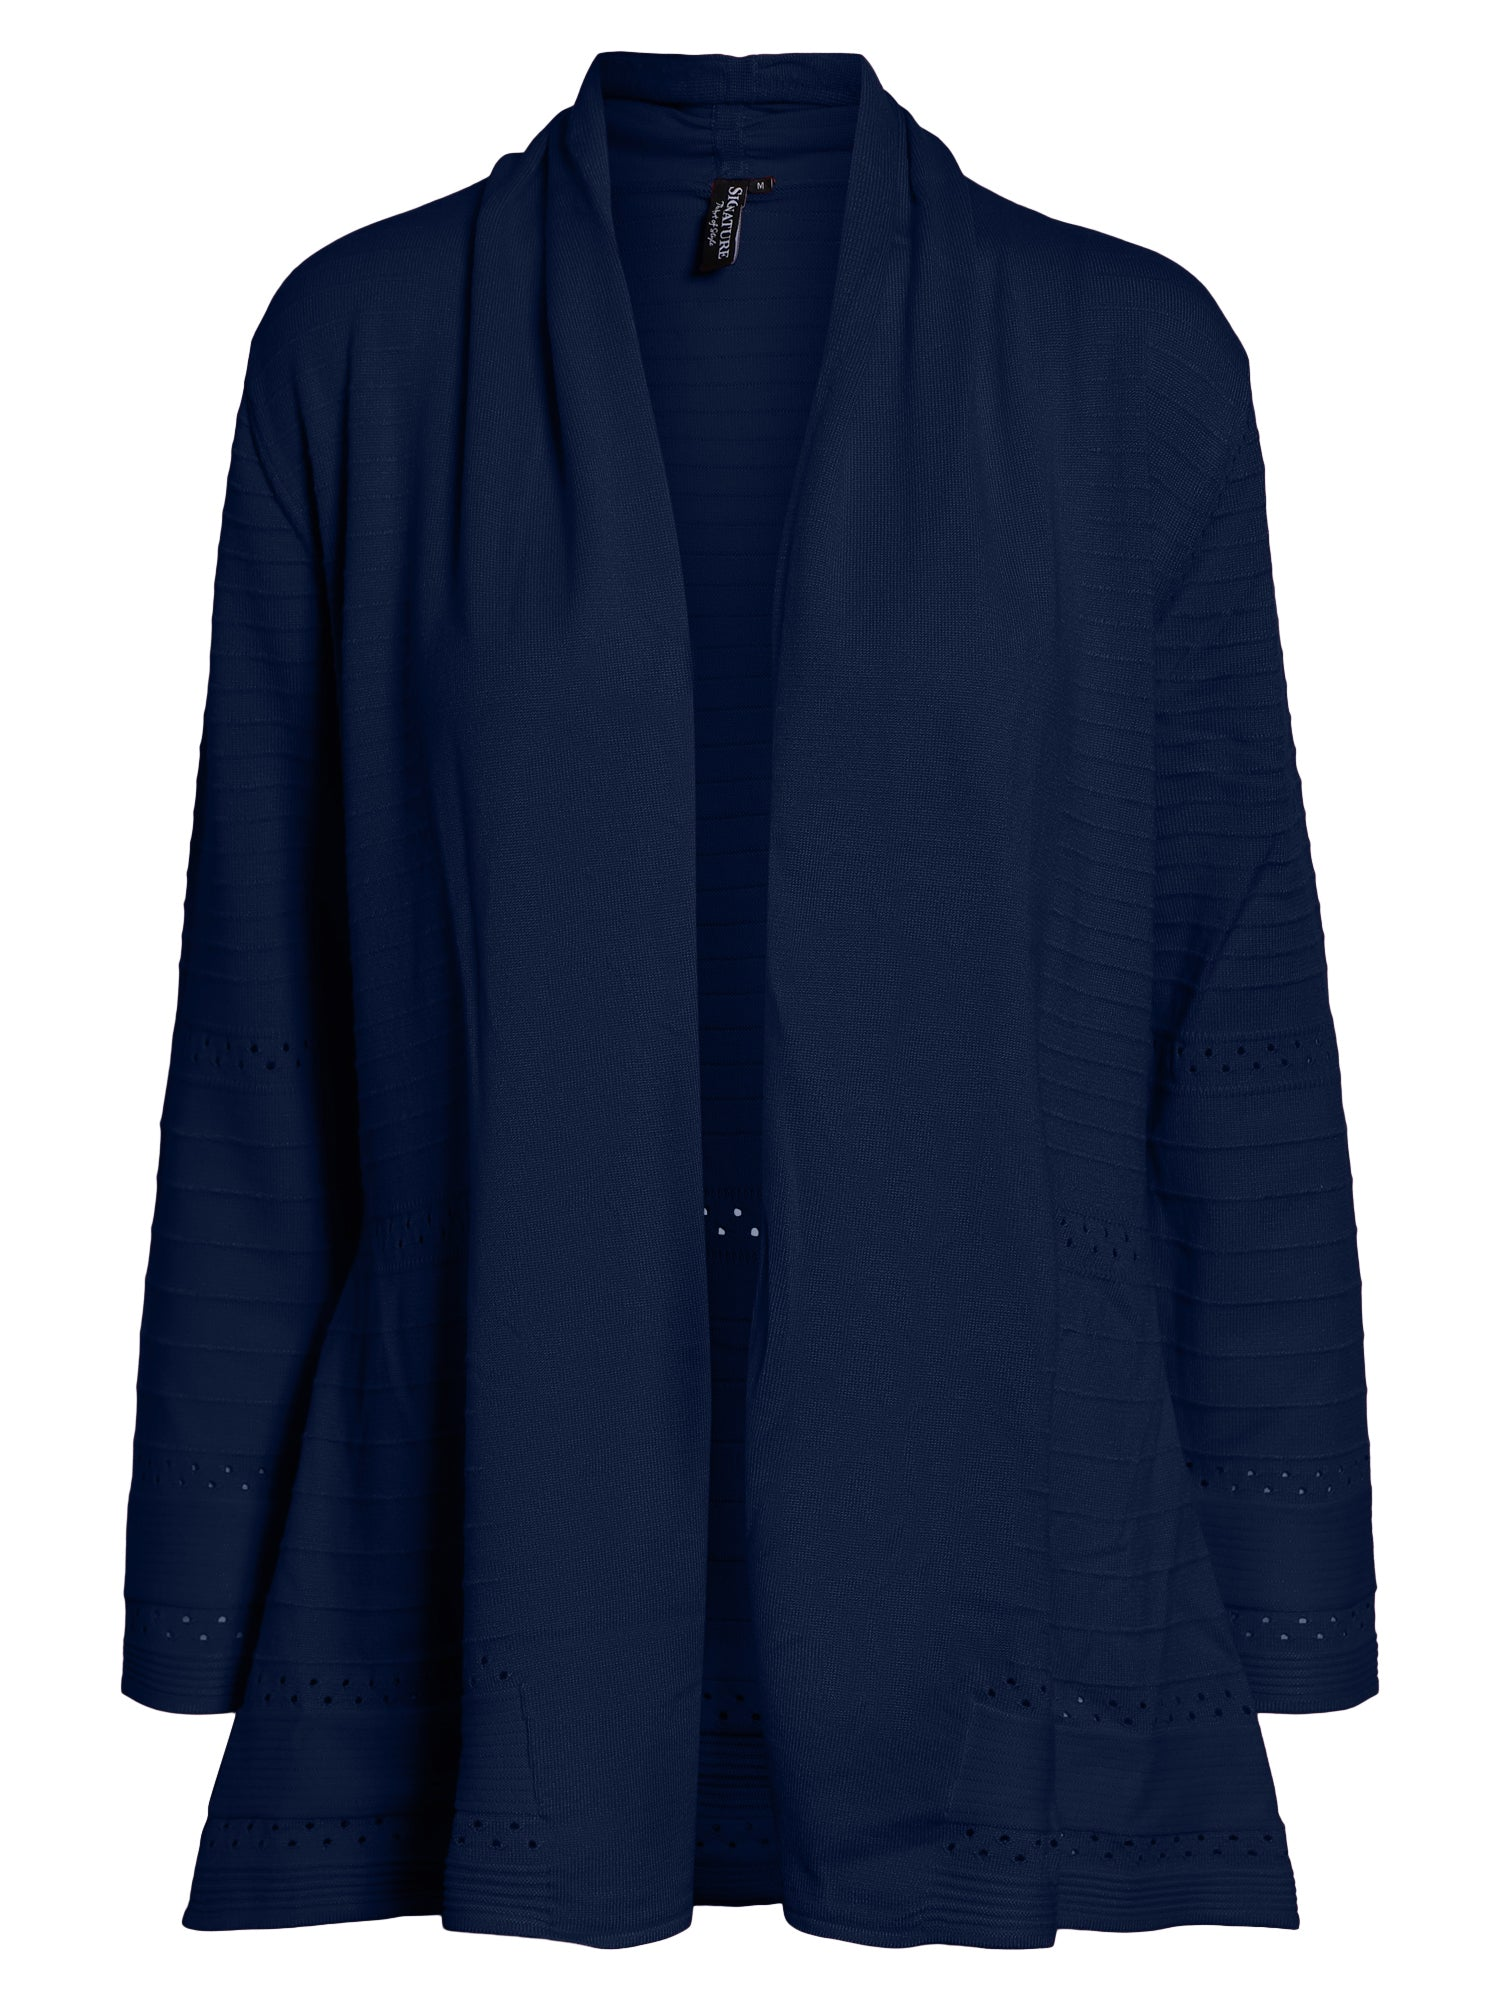 Image of   Cardigan - Navy